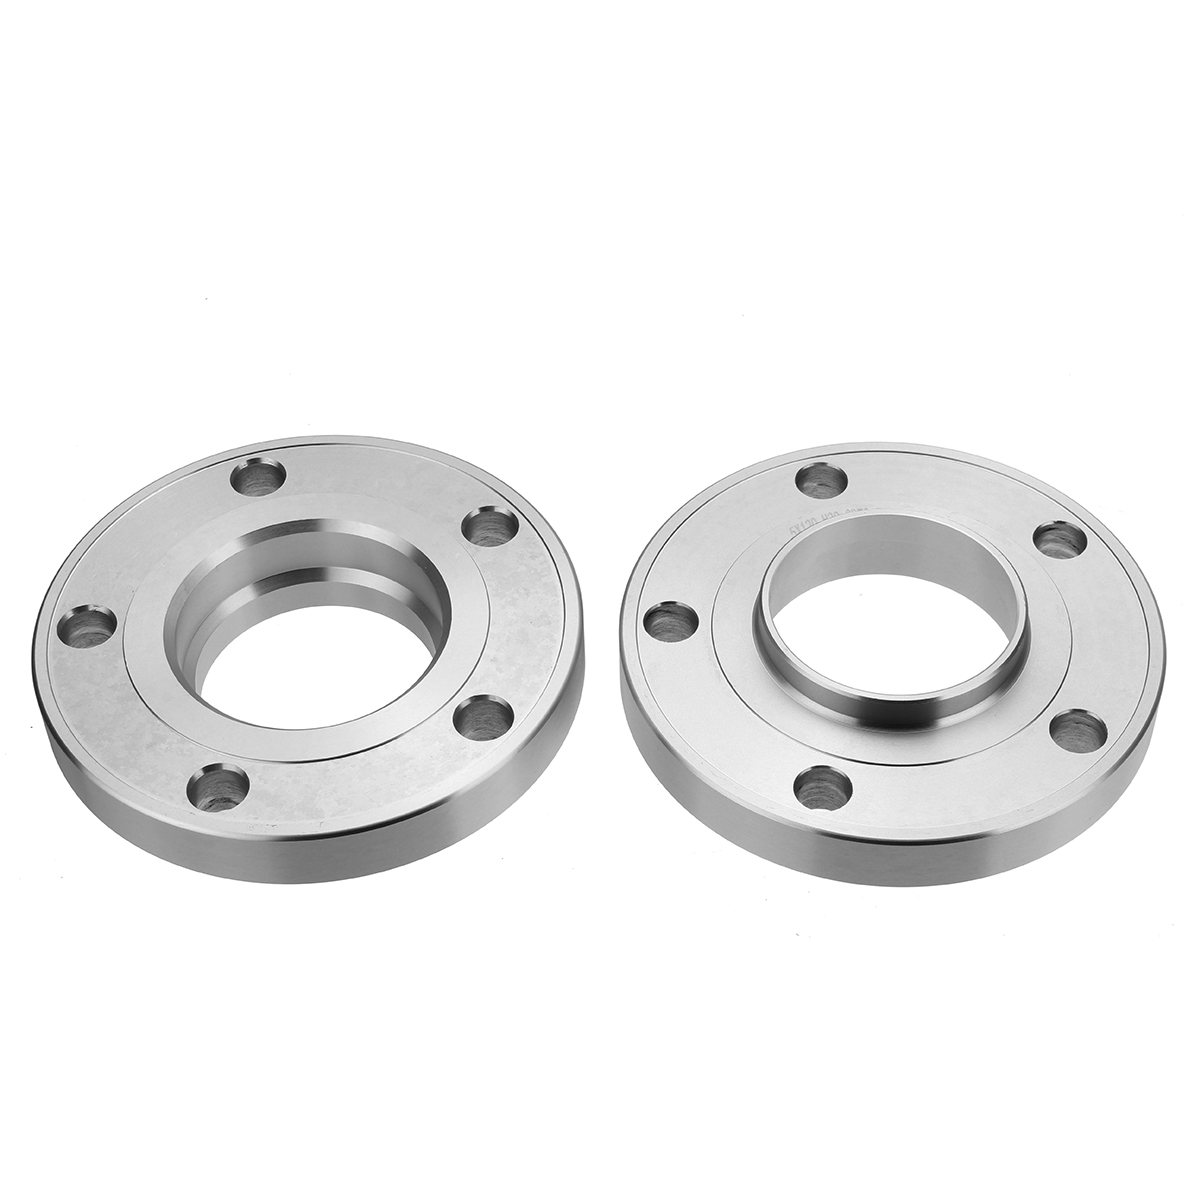 5x120mm Wheel Spacer Hubcentric Kit w/ Blot Alloy For BMW 3 Series E90 2006-2012